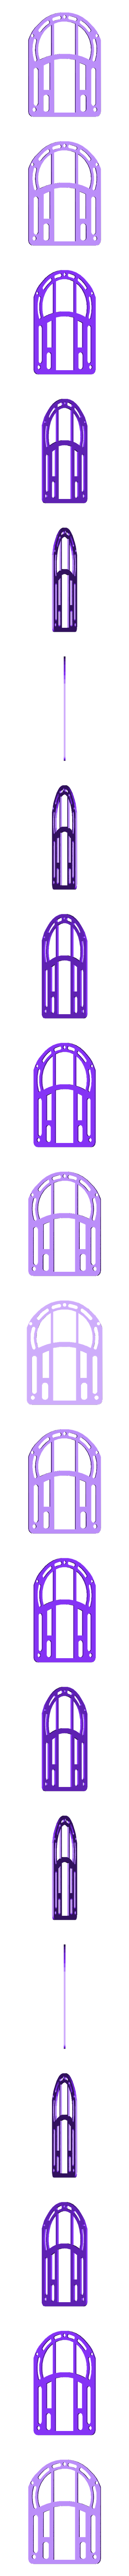 stencil_door.stl Download free STL file Cereal box, Art Nouveau house • 3D printer template, Steedrick